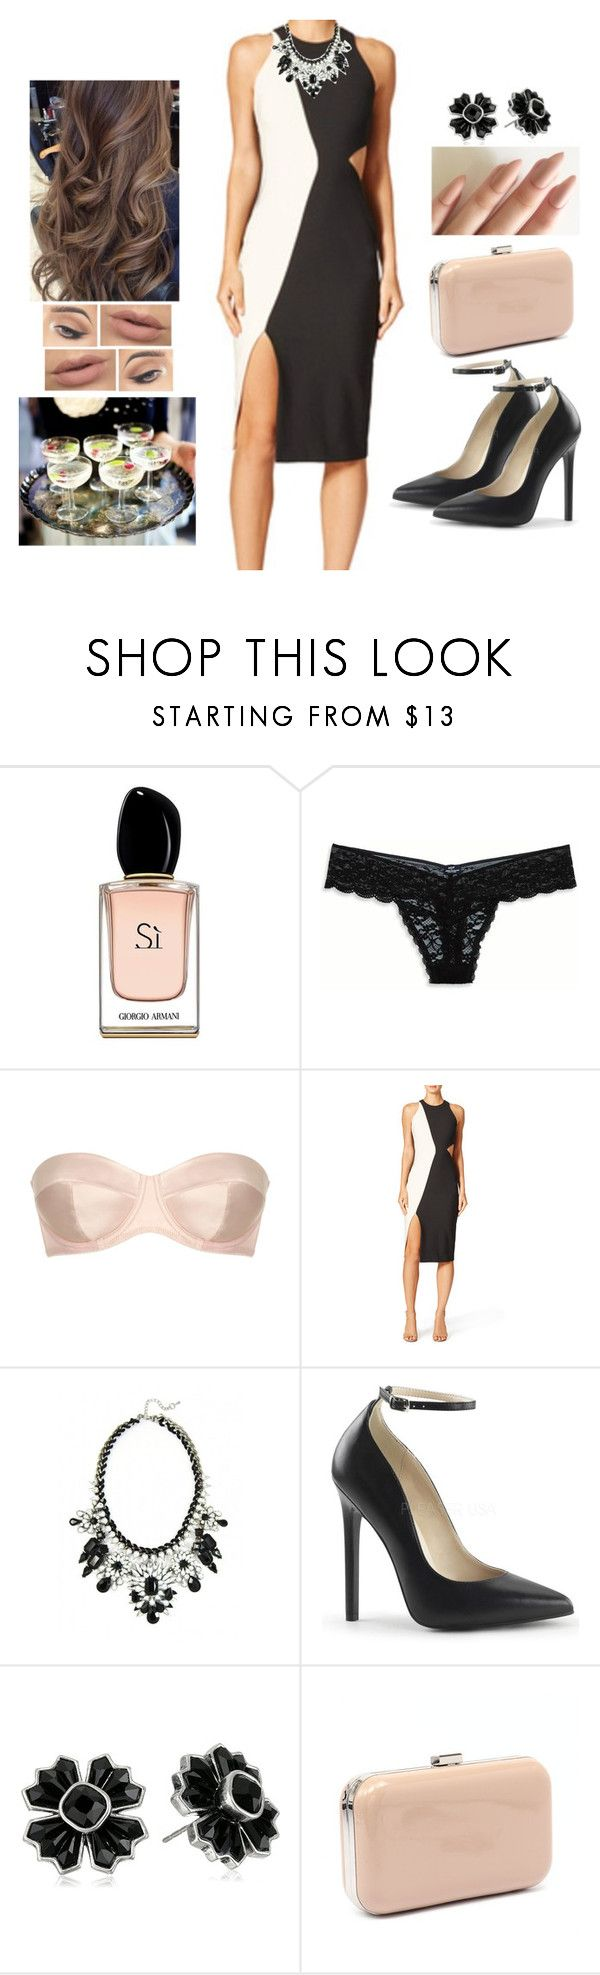 """Official Party Night"" by teodoramaria98 ❤ liked on Polyvore featuring Armani Beauty, American Eagle Outfitters, L'Agent By Agent Provocateur, GET LOST, Marc Jacobs and Verali"